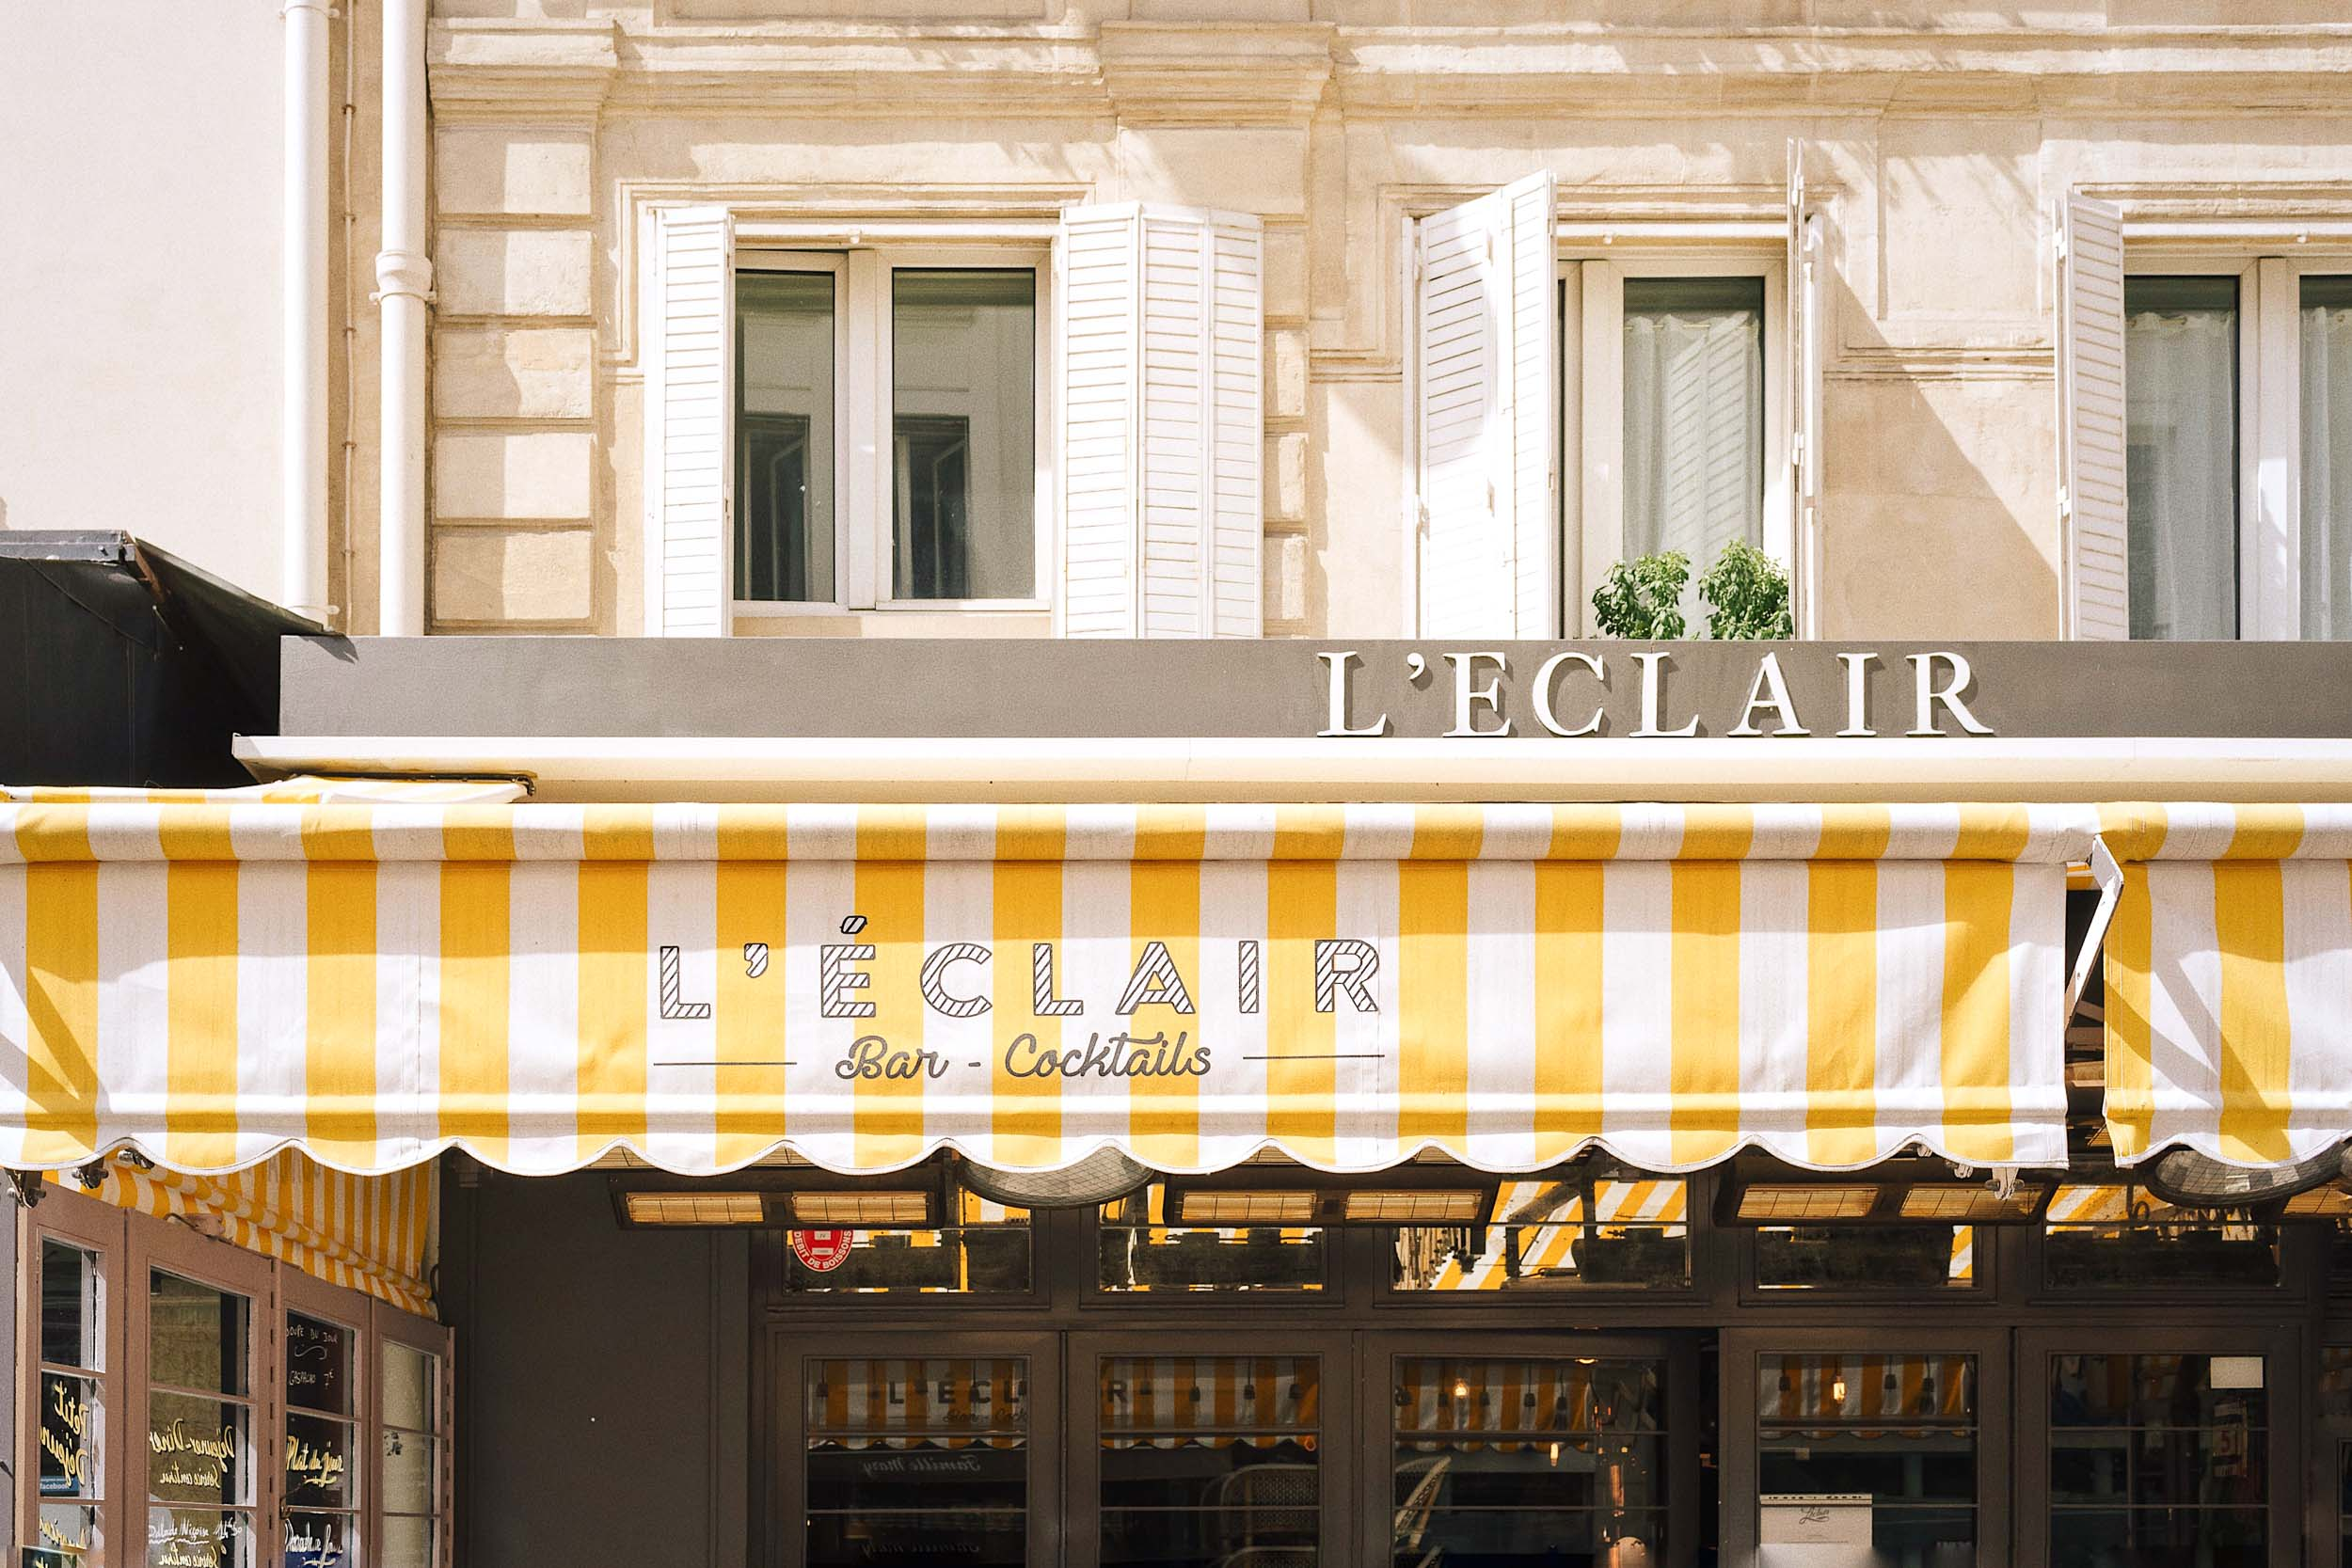 Paris walking tours: take yourself on a self-guided tour to L'Eclair bar on famous Rue Cler